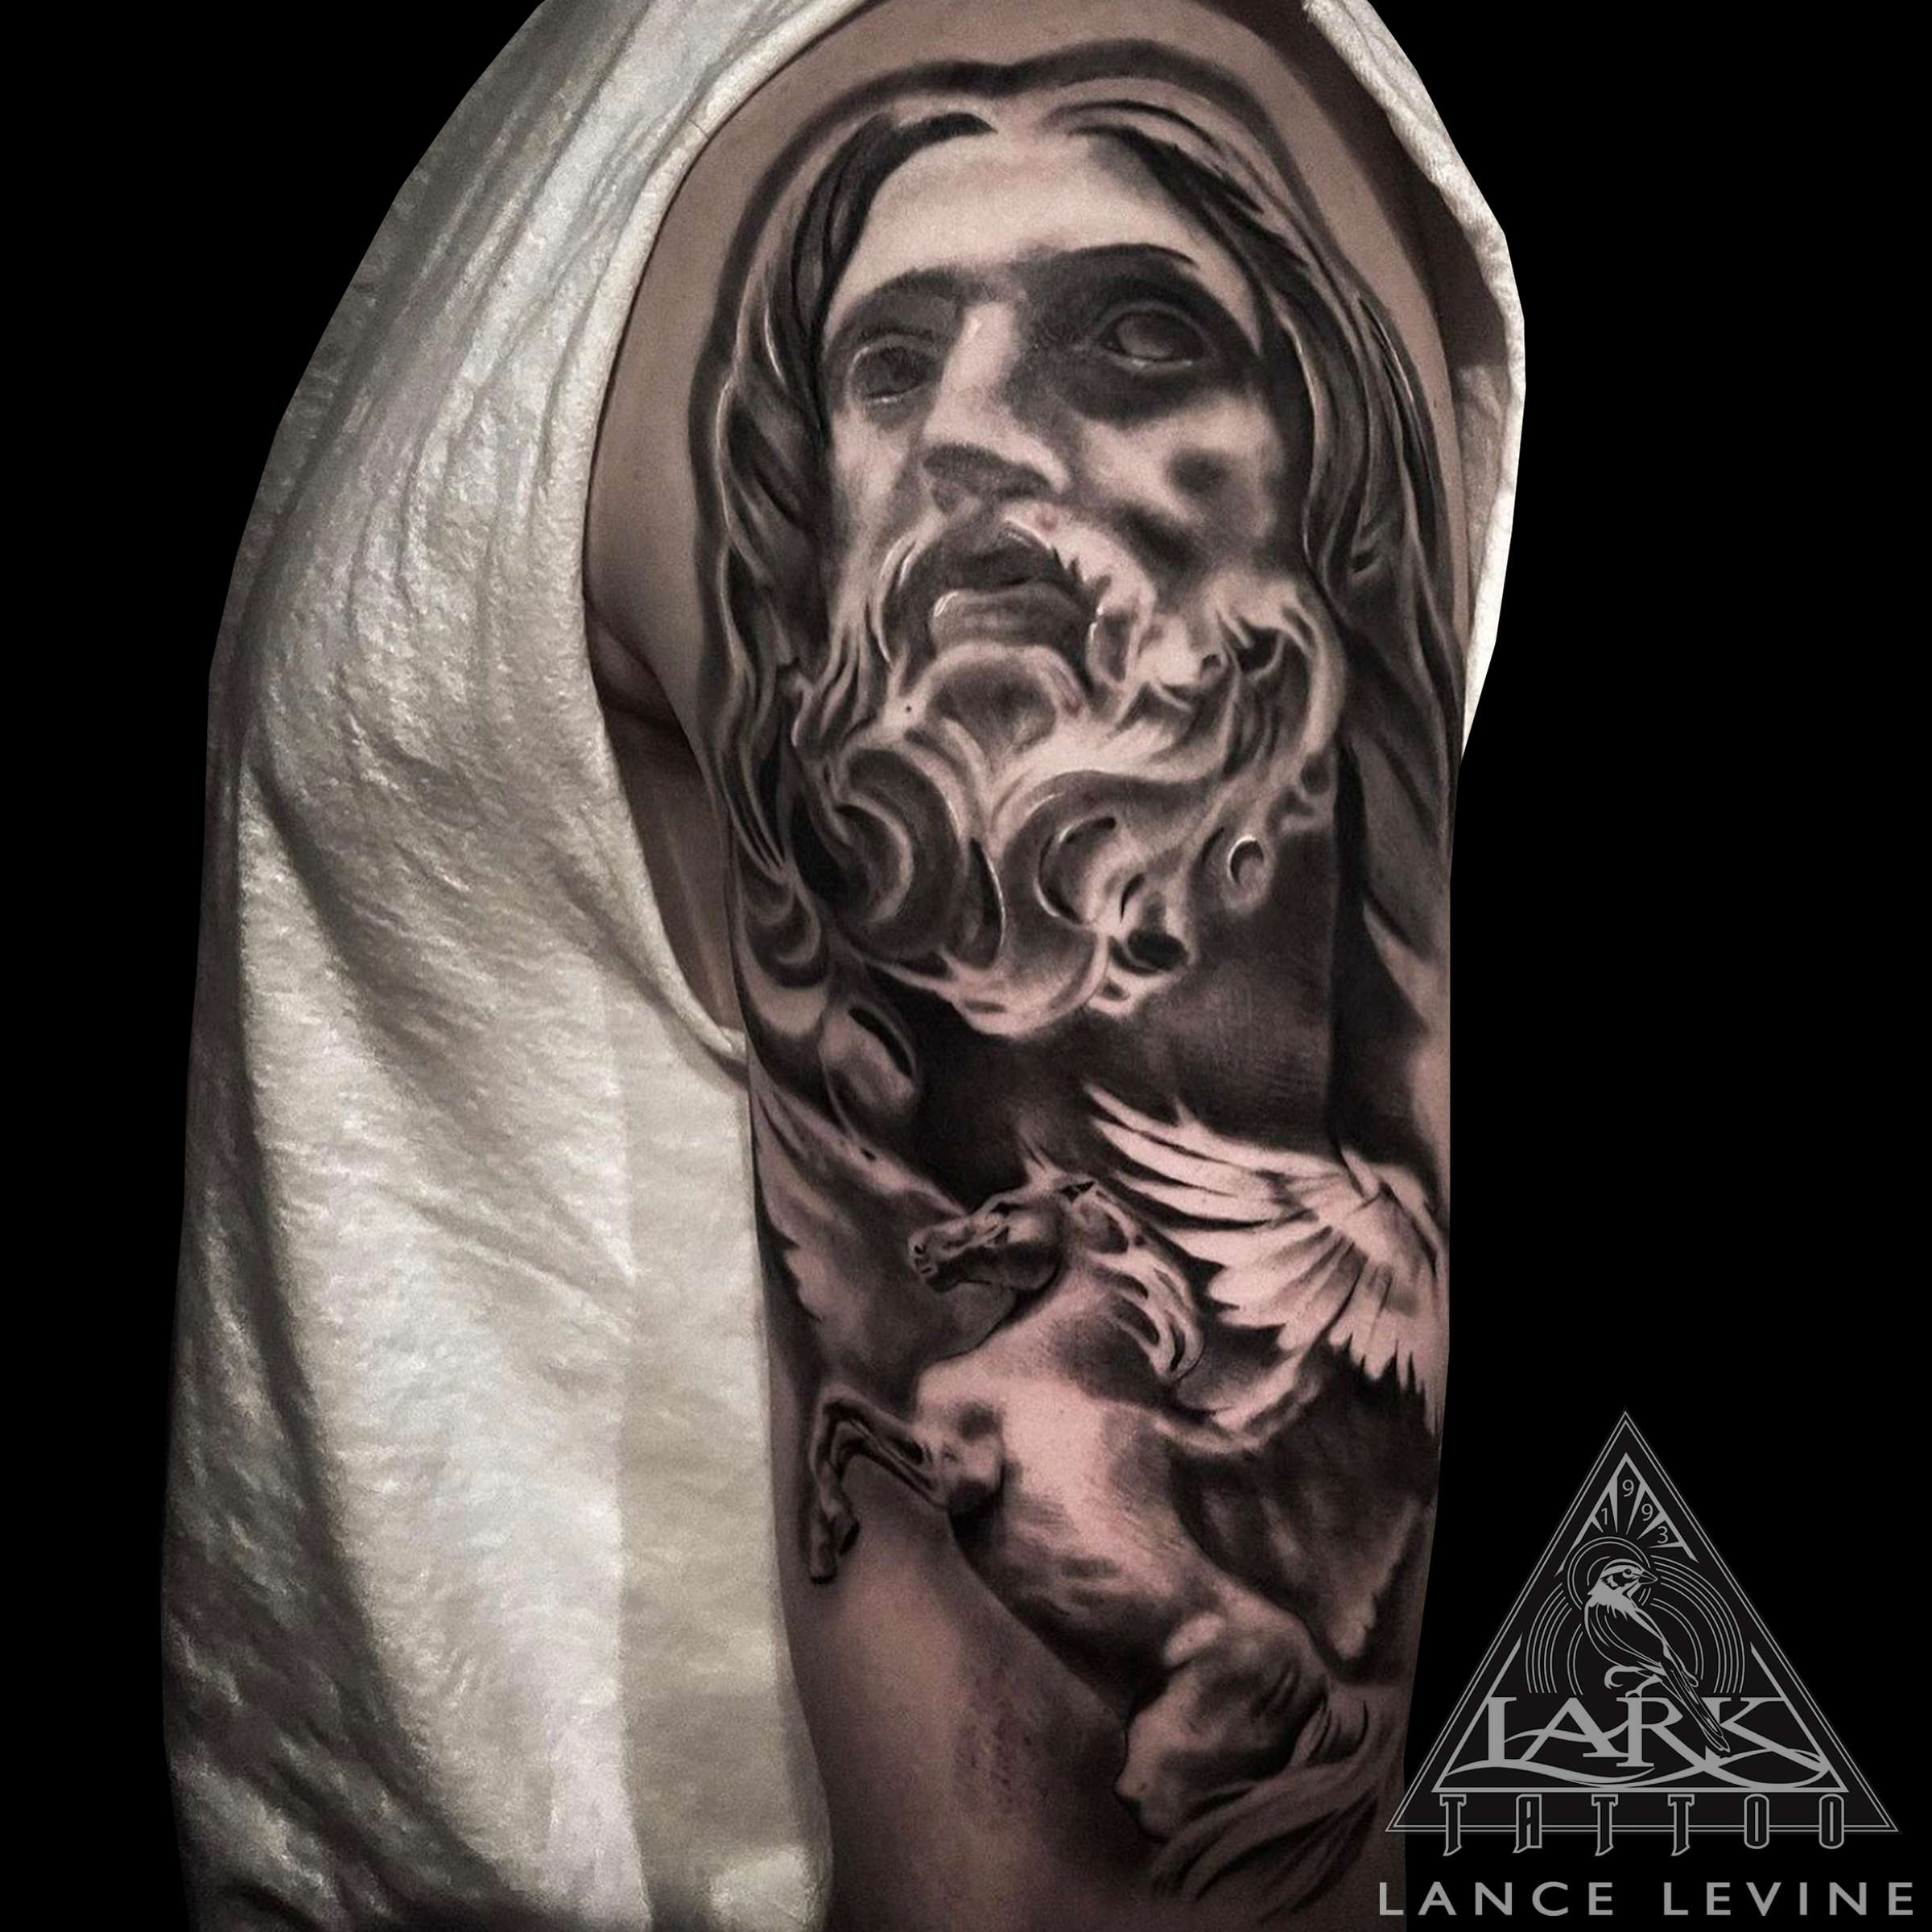 #LarkTattoo #Tattoo #Tattoos #LanceLevine #LanceLevineLarkTattoo #GreekTattoo #Zeus #ZeusTattoo #Pegasus #PegasusTattoo #Mythology #MythologyTattoo #Mythological #MythologicalTattoo #GreekGod #GreekGodTattoo #Realistic #RealisticTattoo #Realism #RealismTattoo #BlackAndGray #BlackAndGrayTattoo #BlackAndGrey #BlackAndGreyTattoo #BNG #BNGTattoo #BNGInkSociety #BishopWand #BishopWandTattoo #SolidInk #TattooArtist #Tattoist #Tattooer #LongIslandTattooArtist #LongIslandTattooer #LongIslandTattoo #TattooOfTheDay #Tat #Tats #Tatts #Tatted #Inked #Ink #TattooInk #AmazingInk #AmazingTattoo #BodyArt #LarkTattooWestbury #Westbury #LongIsland #NY #NewYork #USA #Art #Tattedup #InkedUp #LarkTattoos